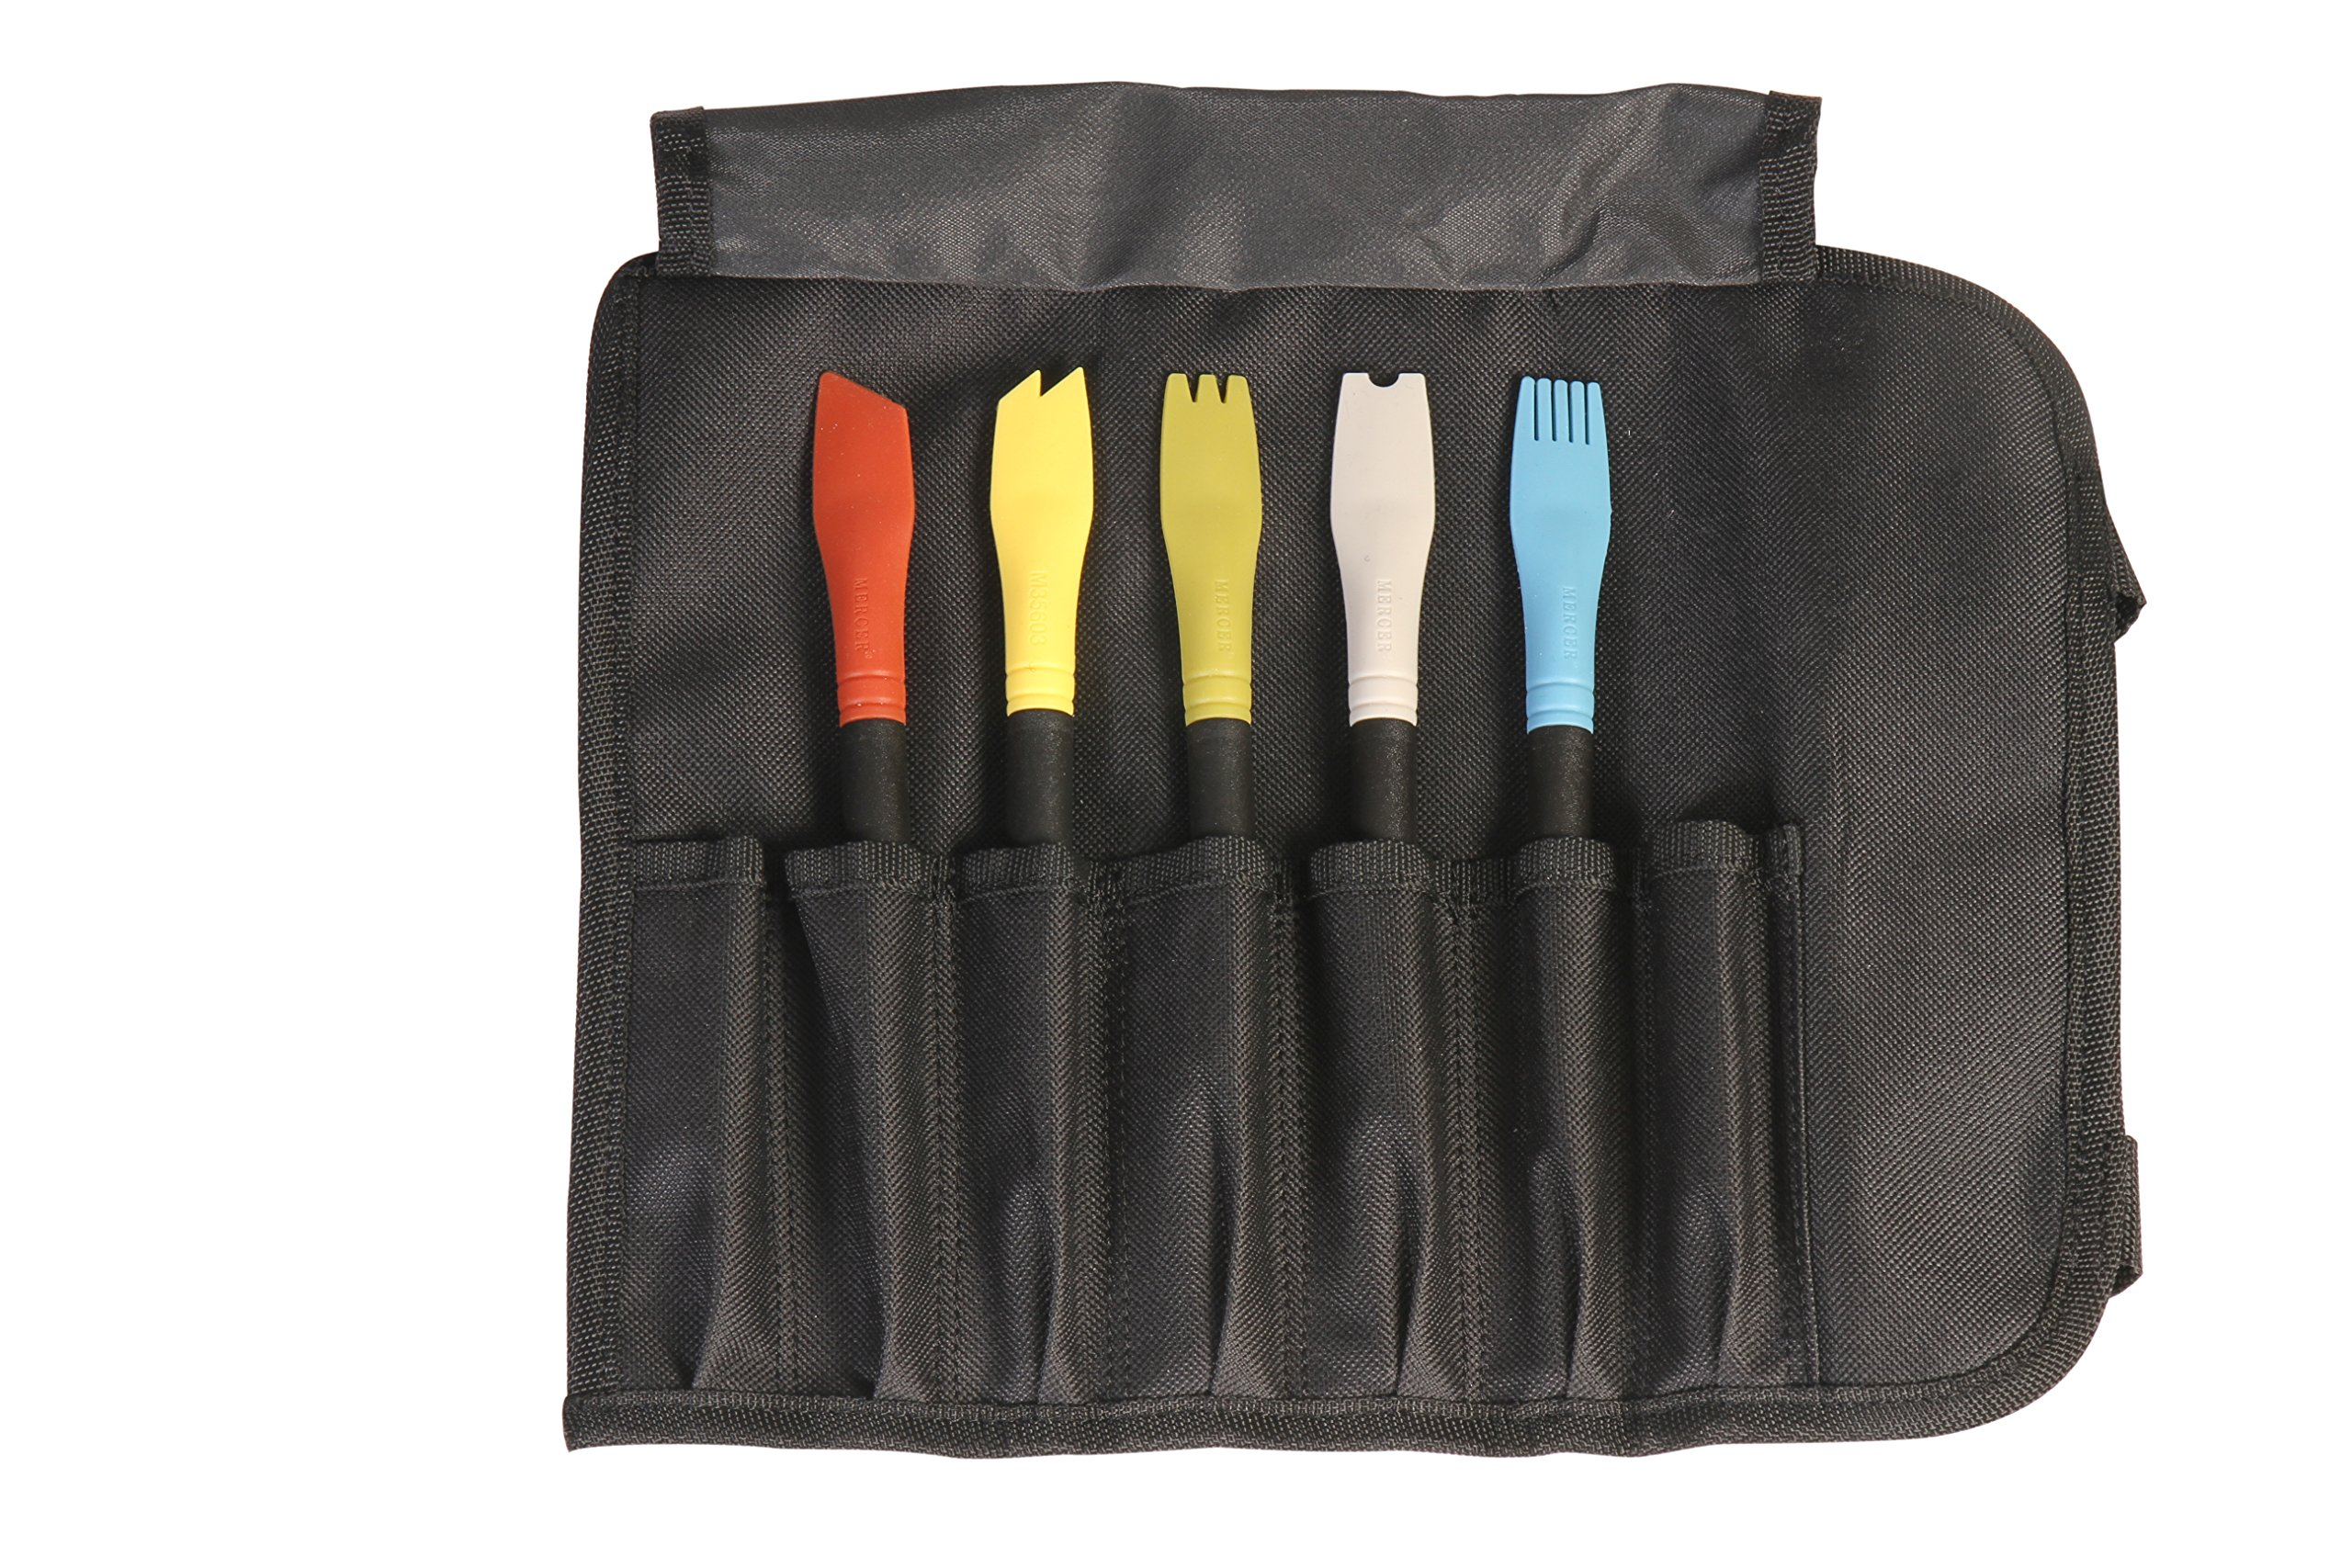 Mercer Culinary Silicone Plating Brush Set – 5 Brushes and a Carrying Case